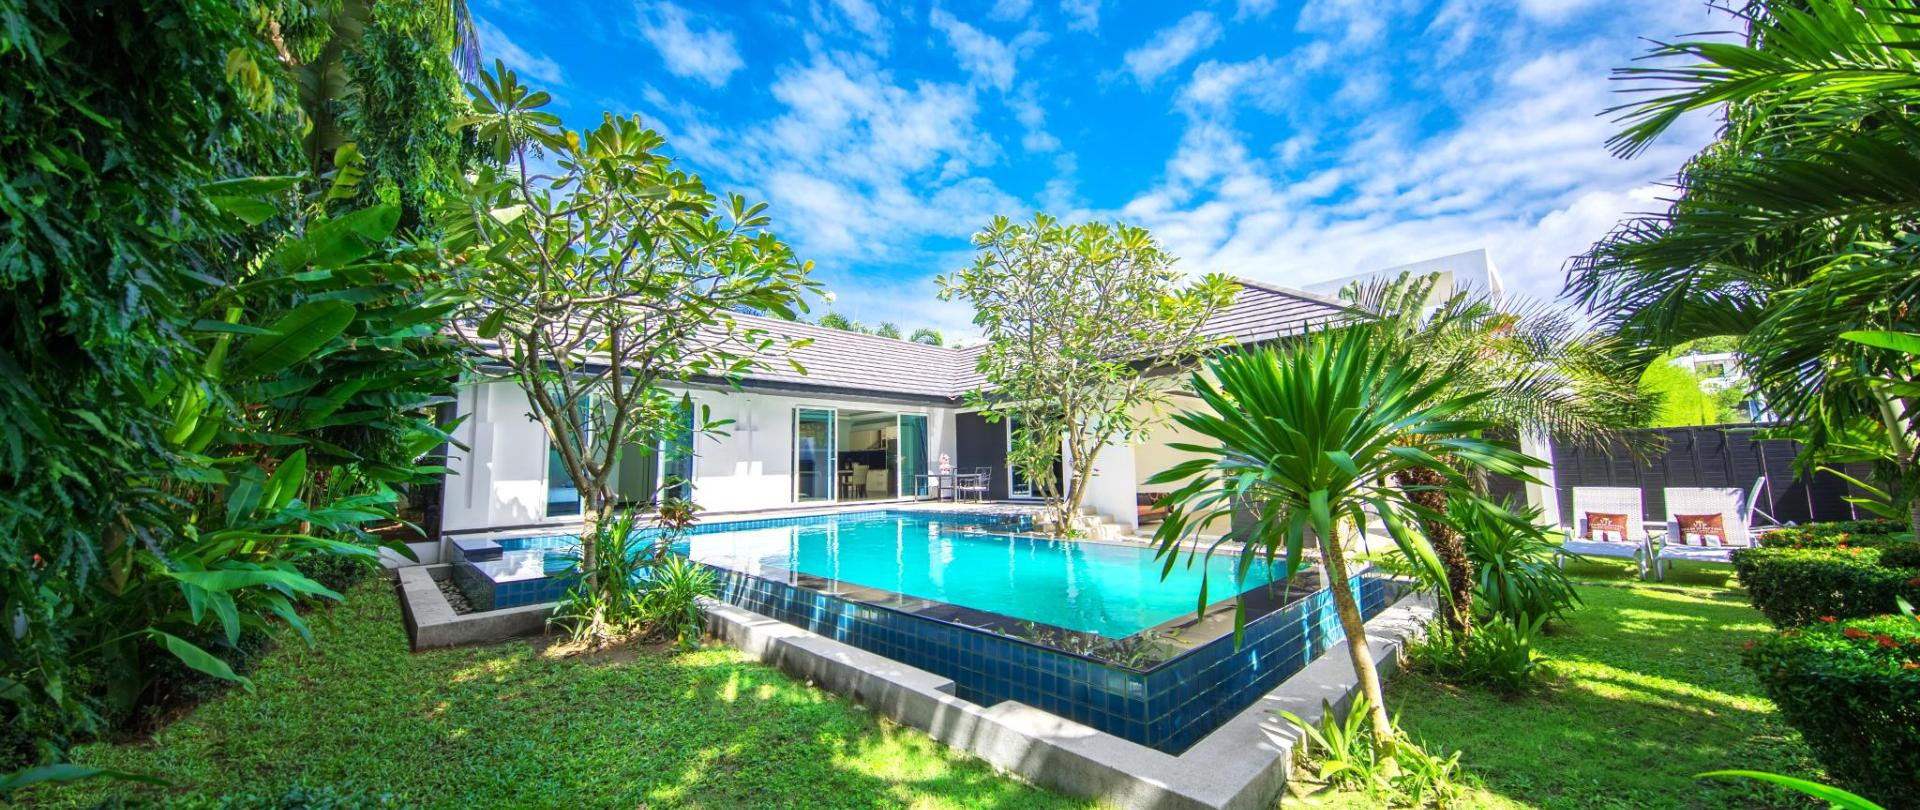 Premium Pool Villa Pattaya